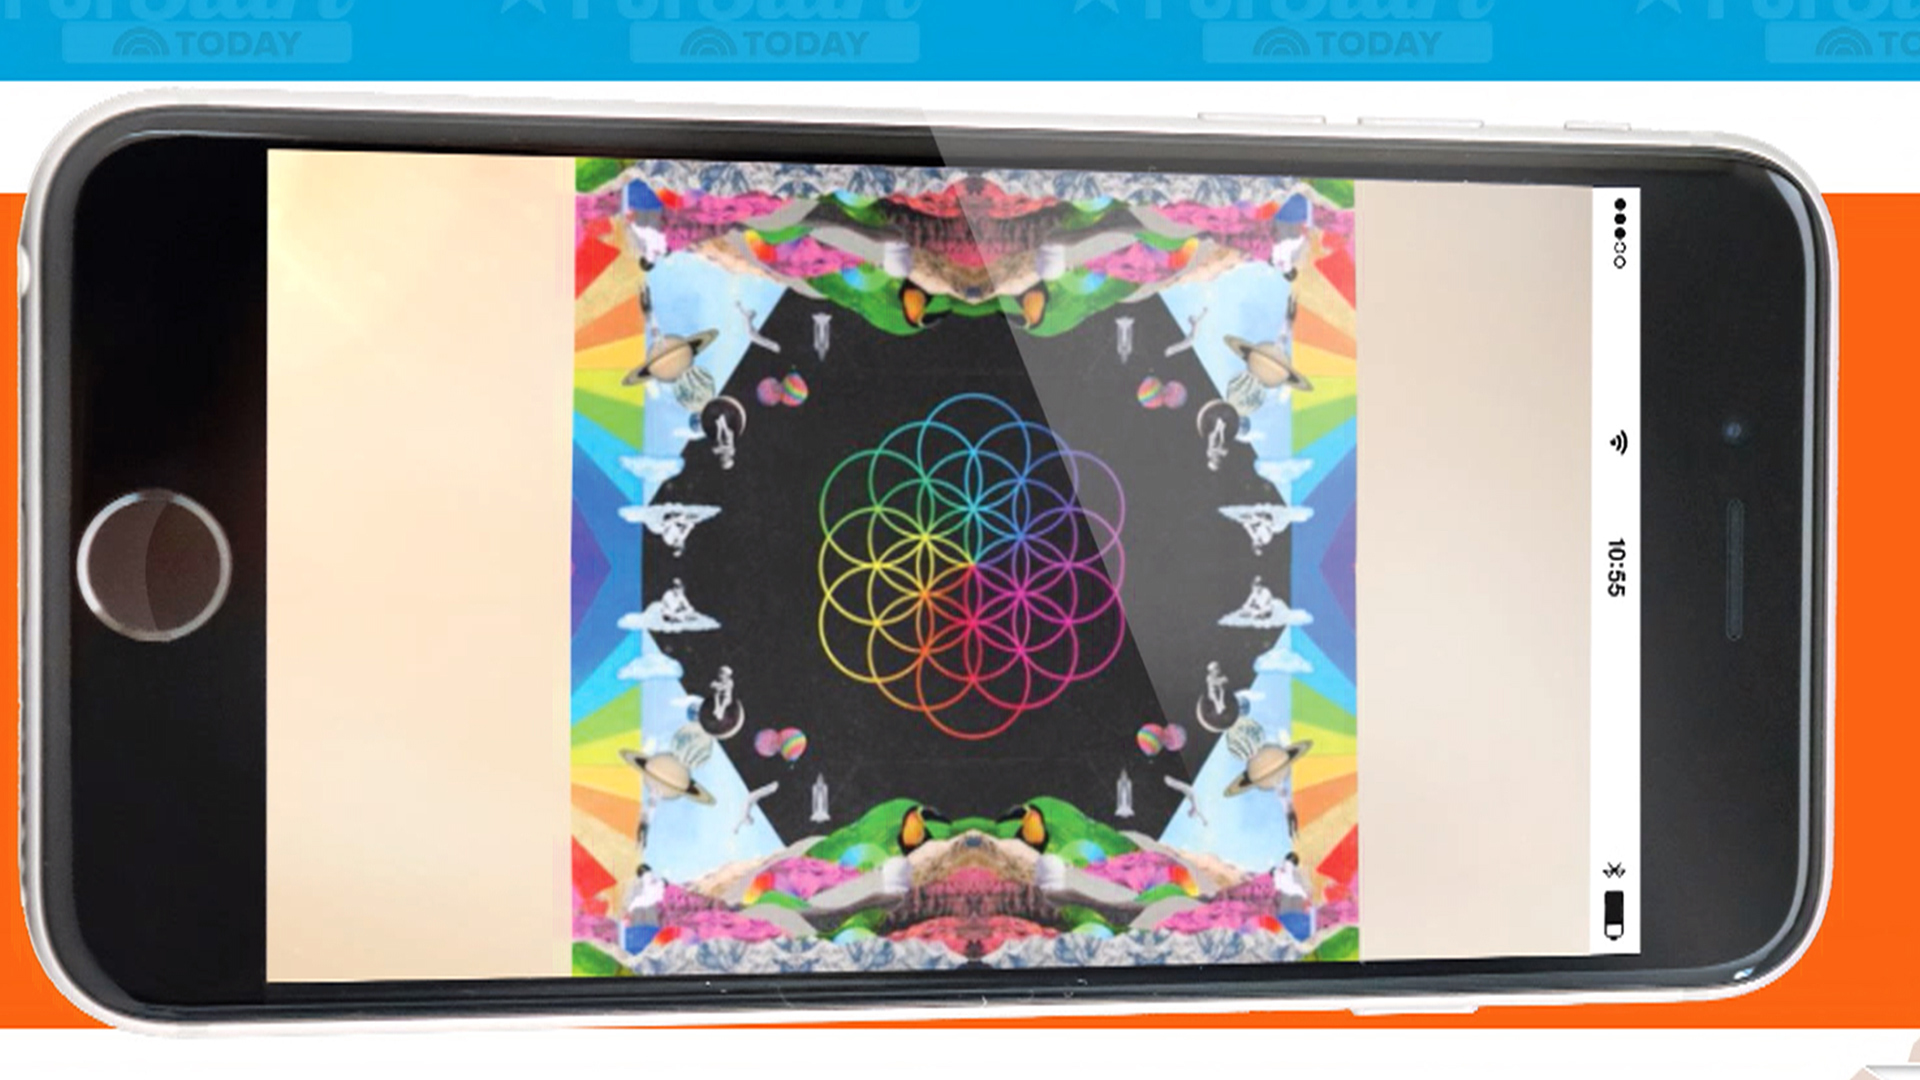 Coldplay releases new song, announce new album that could be their last